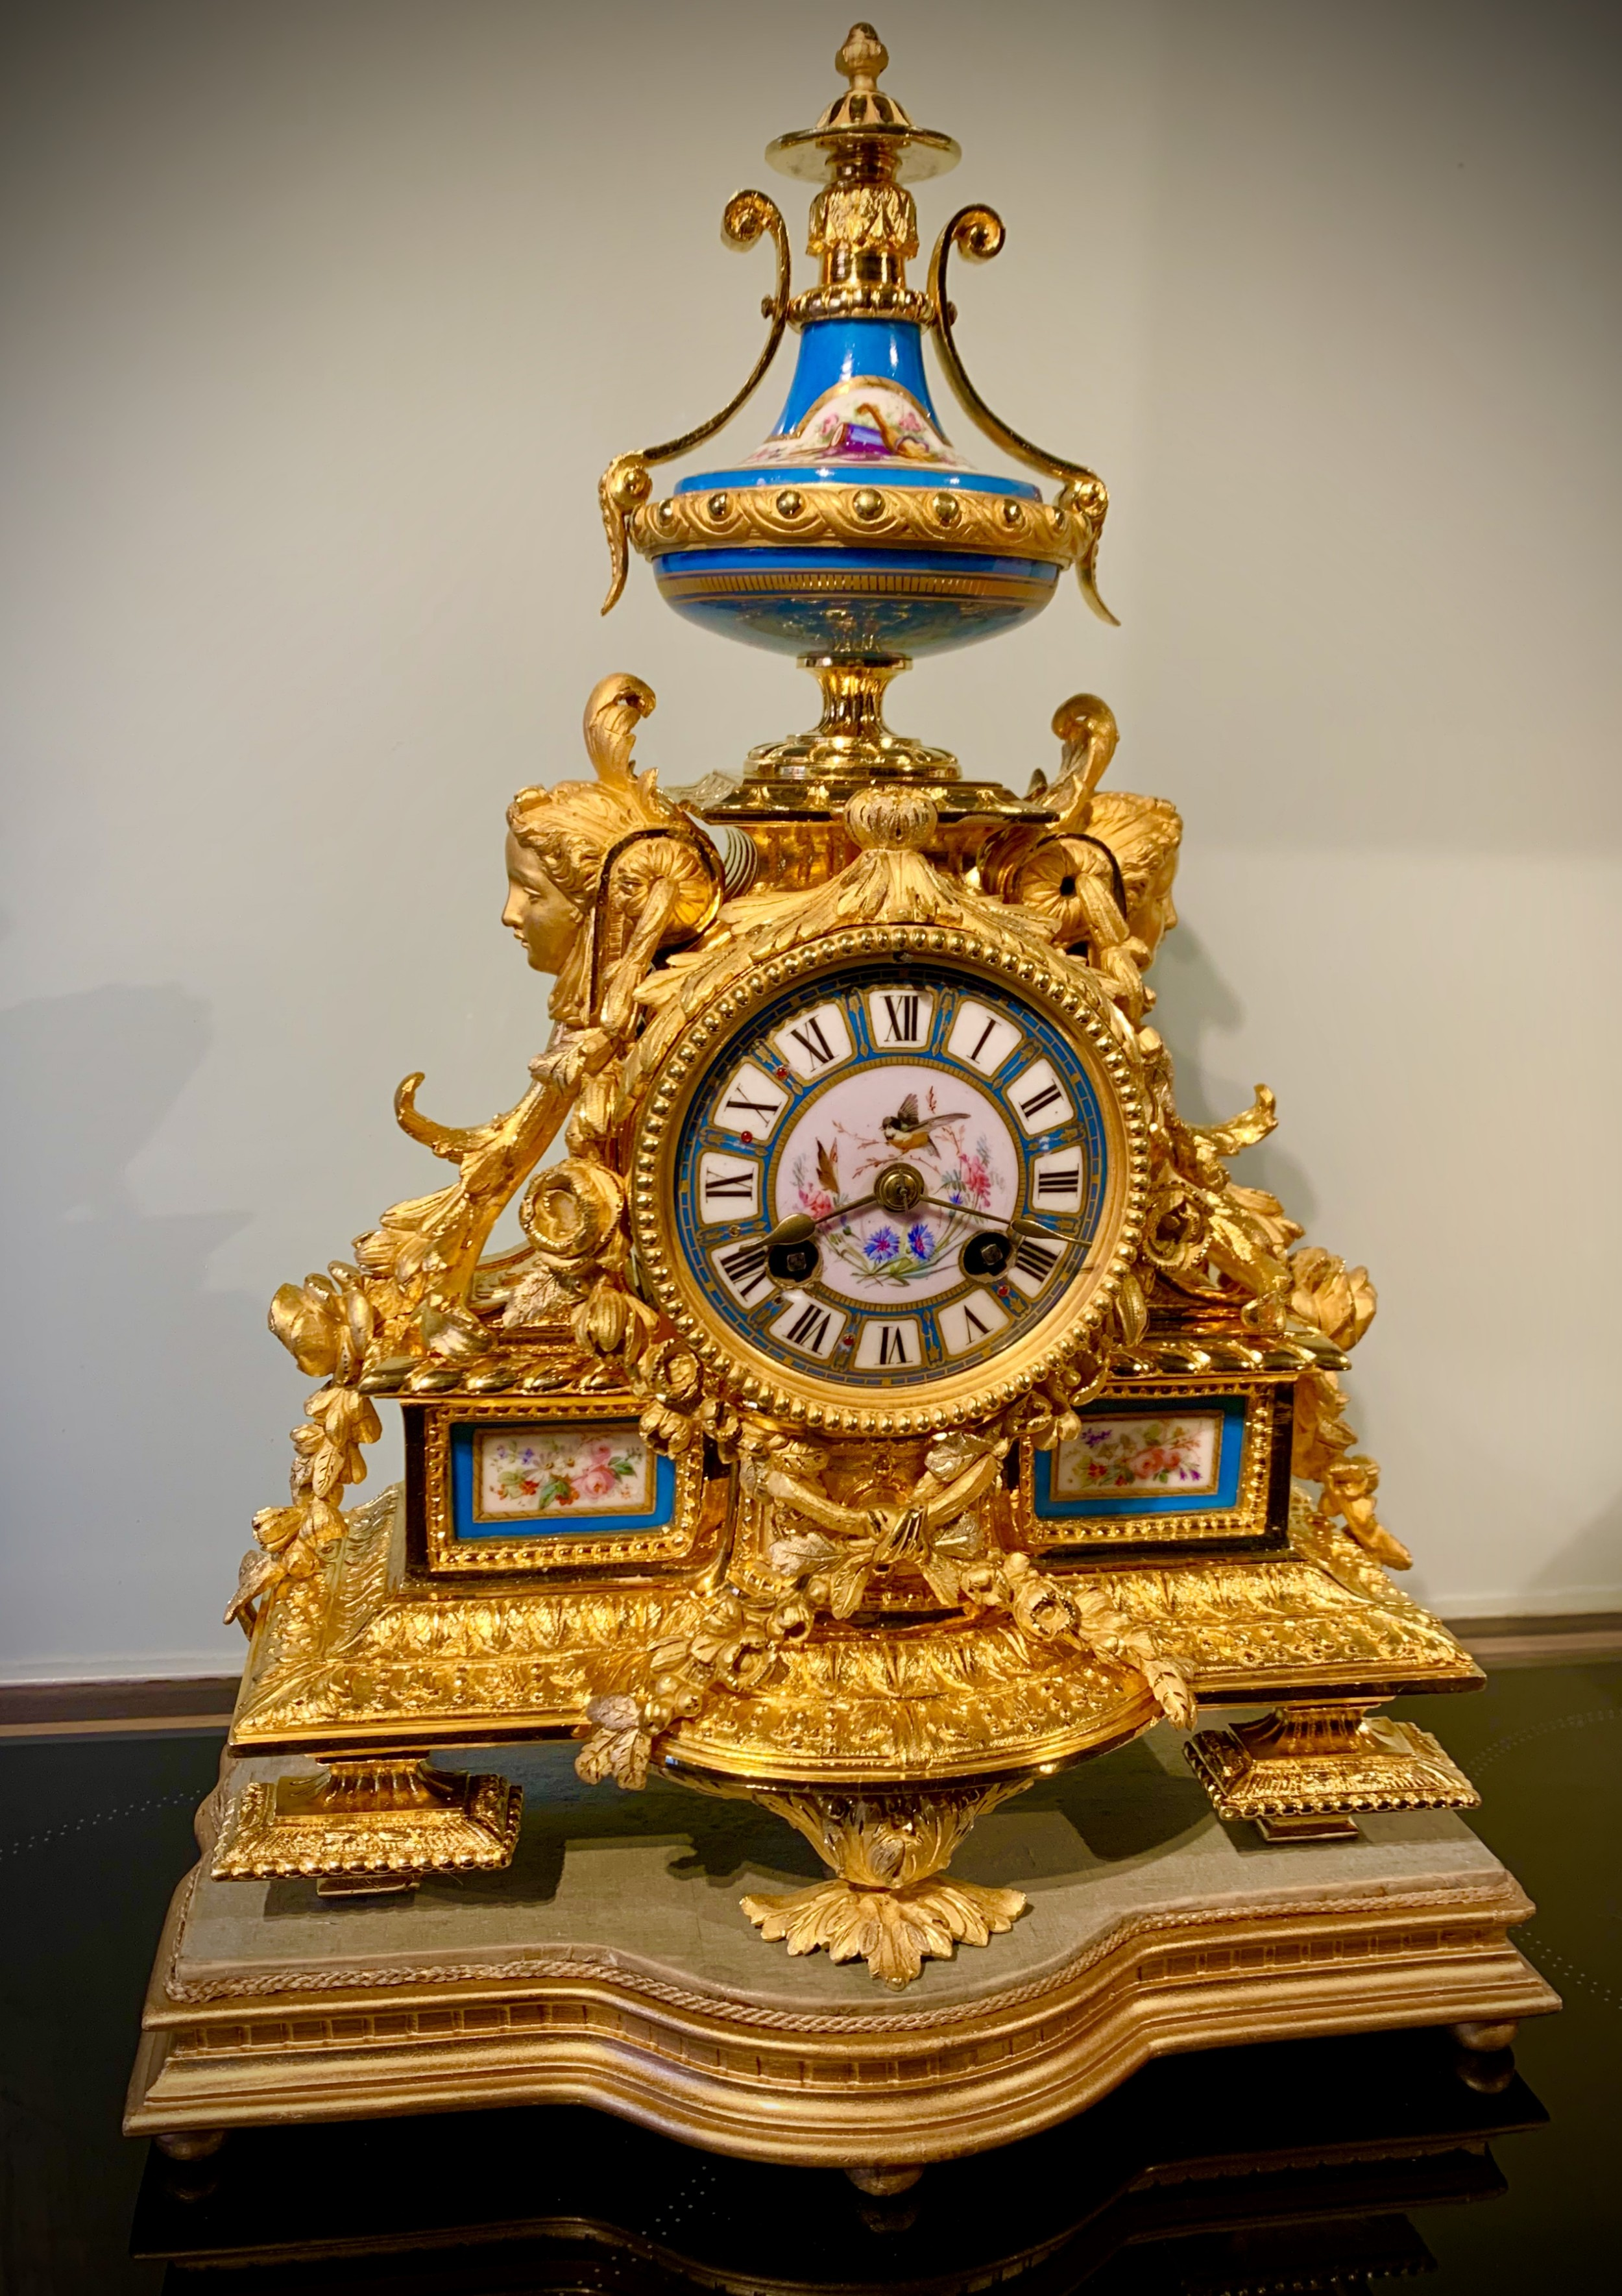 stunning french mercurial gilt and sevres panel clock by japy freres